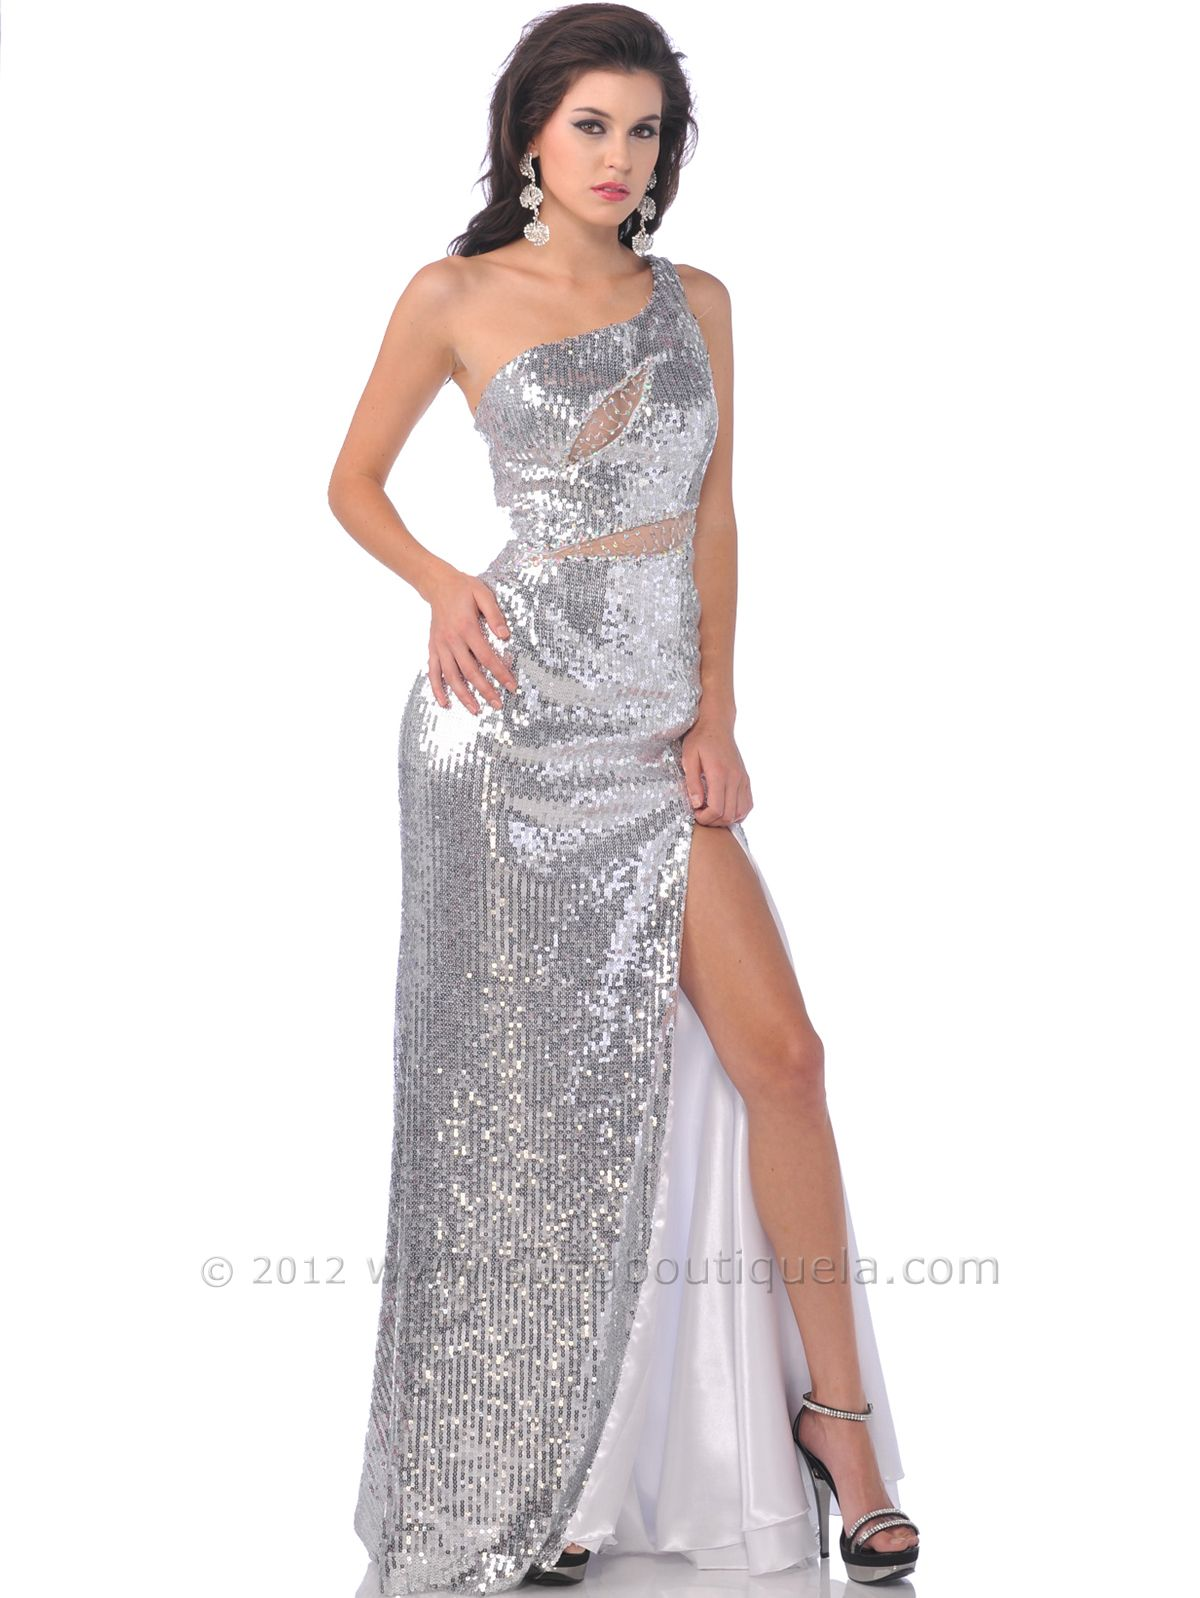 Homecoming Dresses | One Shoulder Full Sequin Prom Dresses, Prom ...